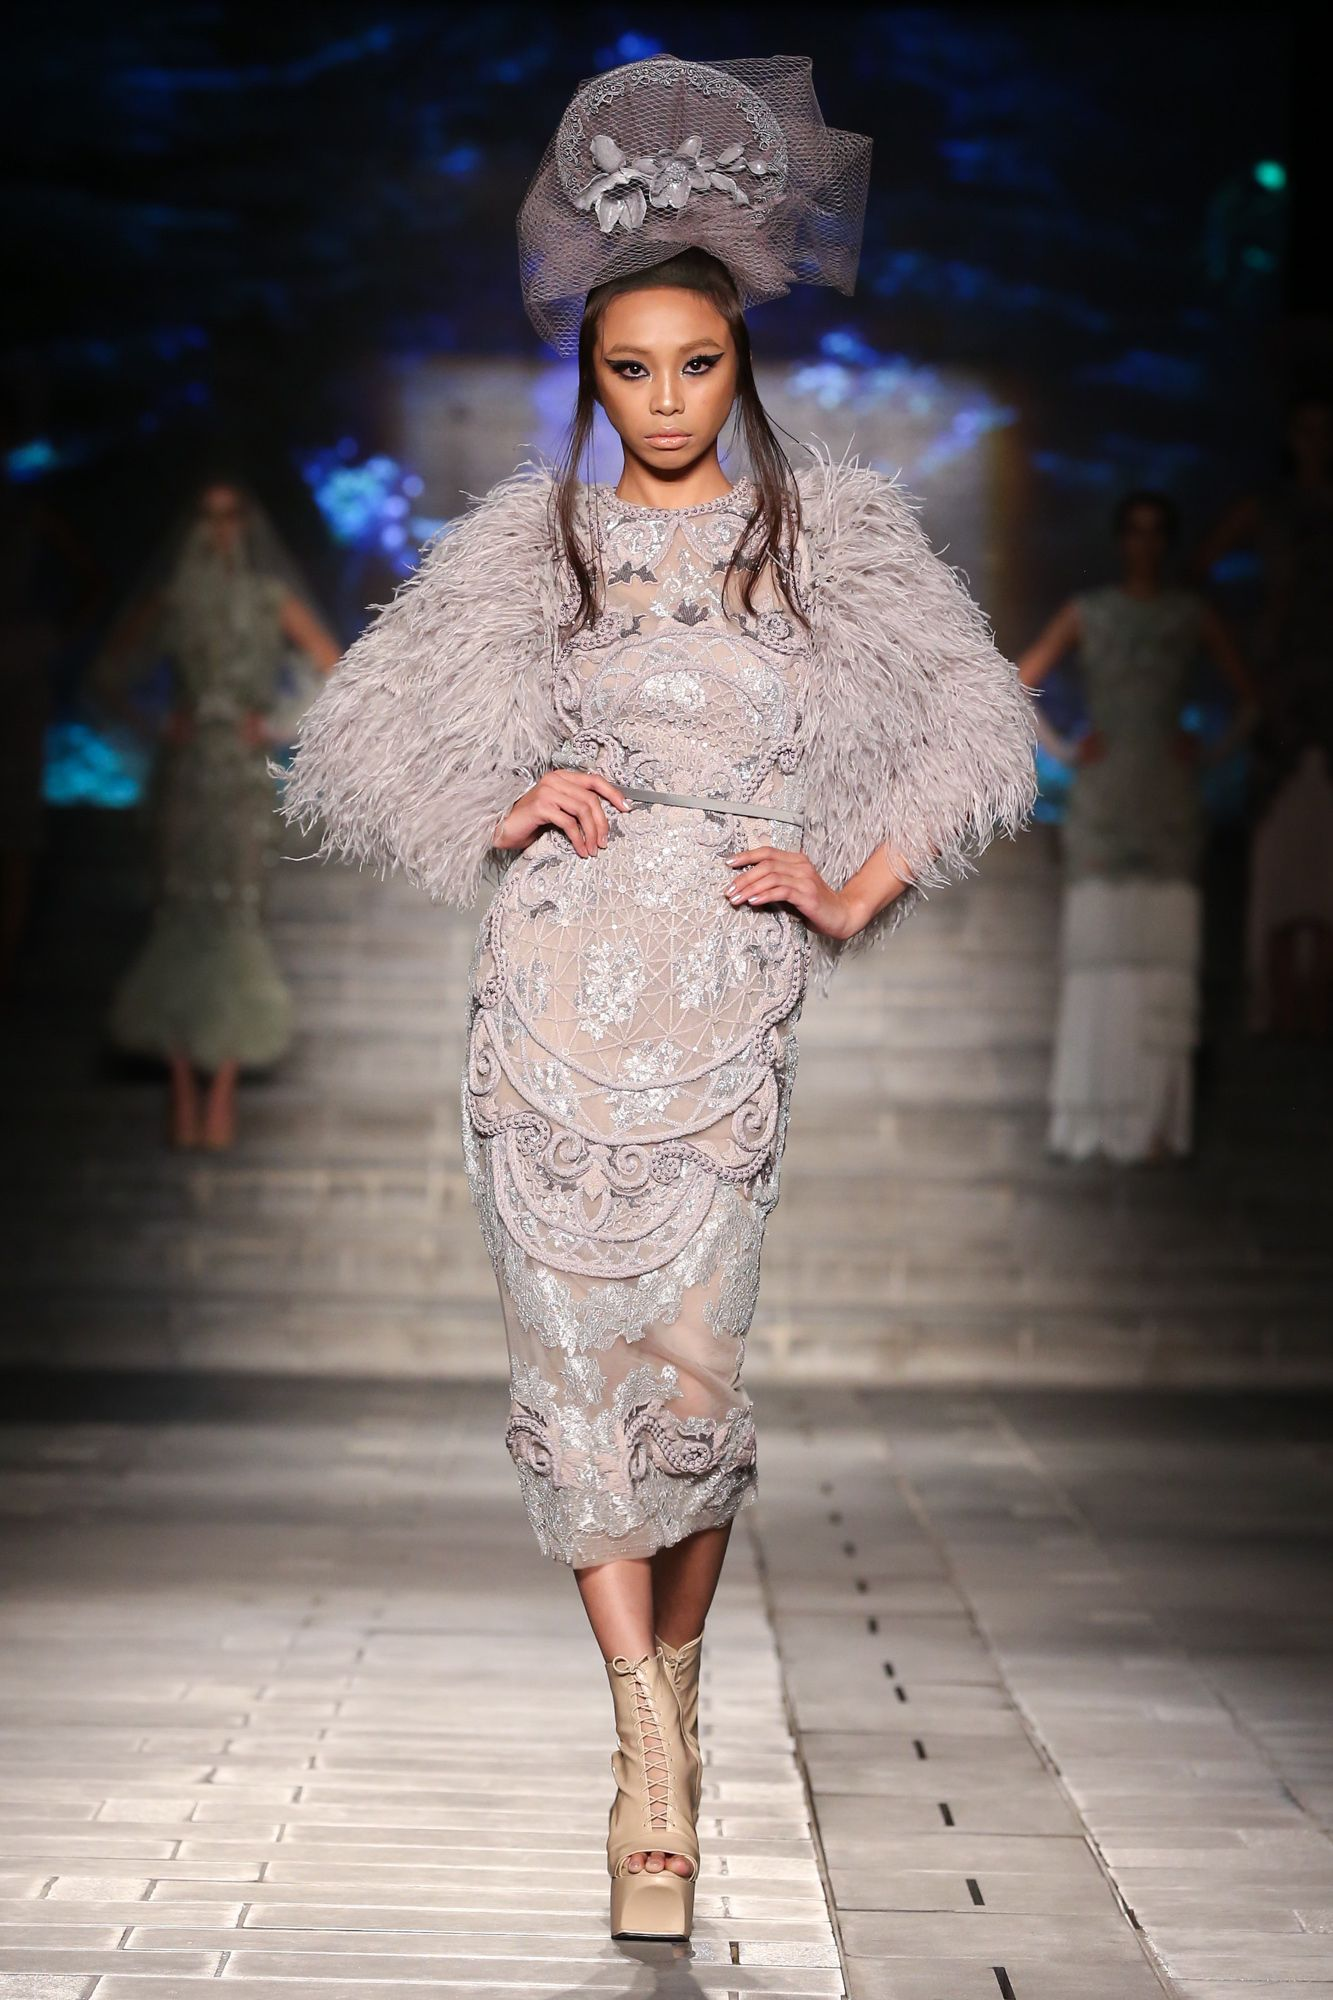 Amato Did It Again He Opened Arabfashionweekofficial And Wowed Everyone With His Designs And Quality Ladies And Gentl Arab Fashion Fashion Couture Fashion